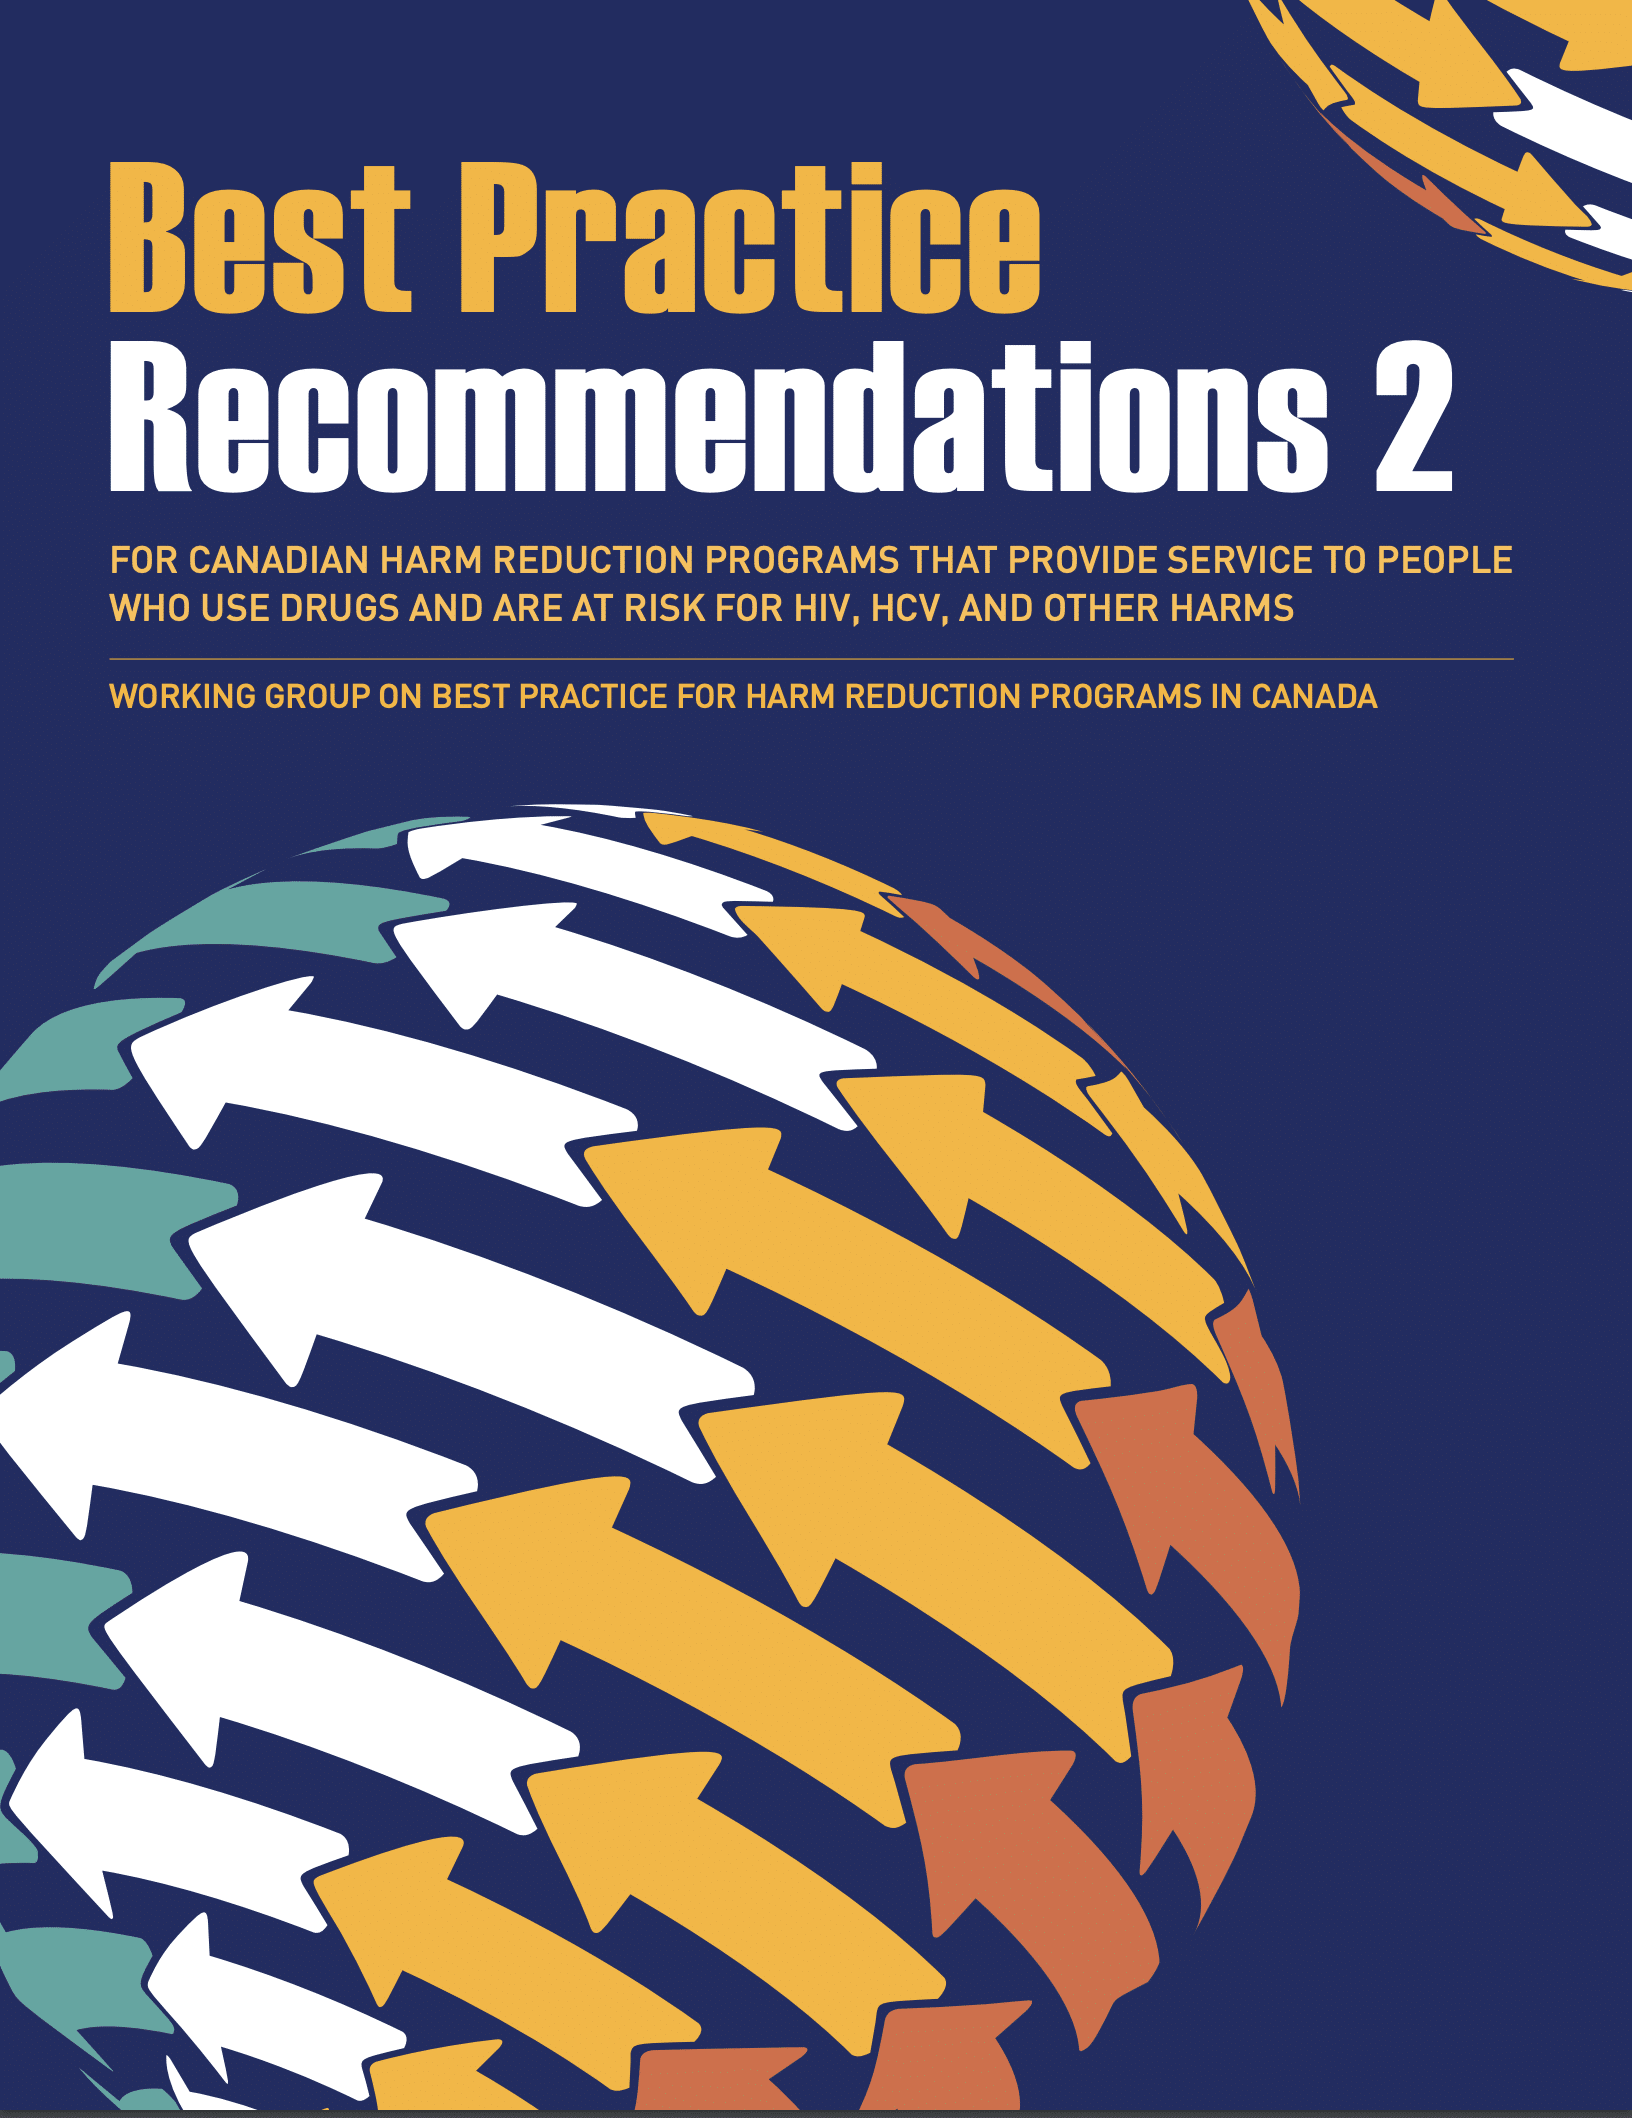 Best practice recommendations 2